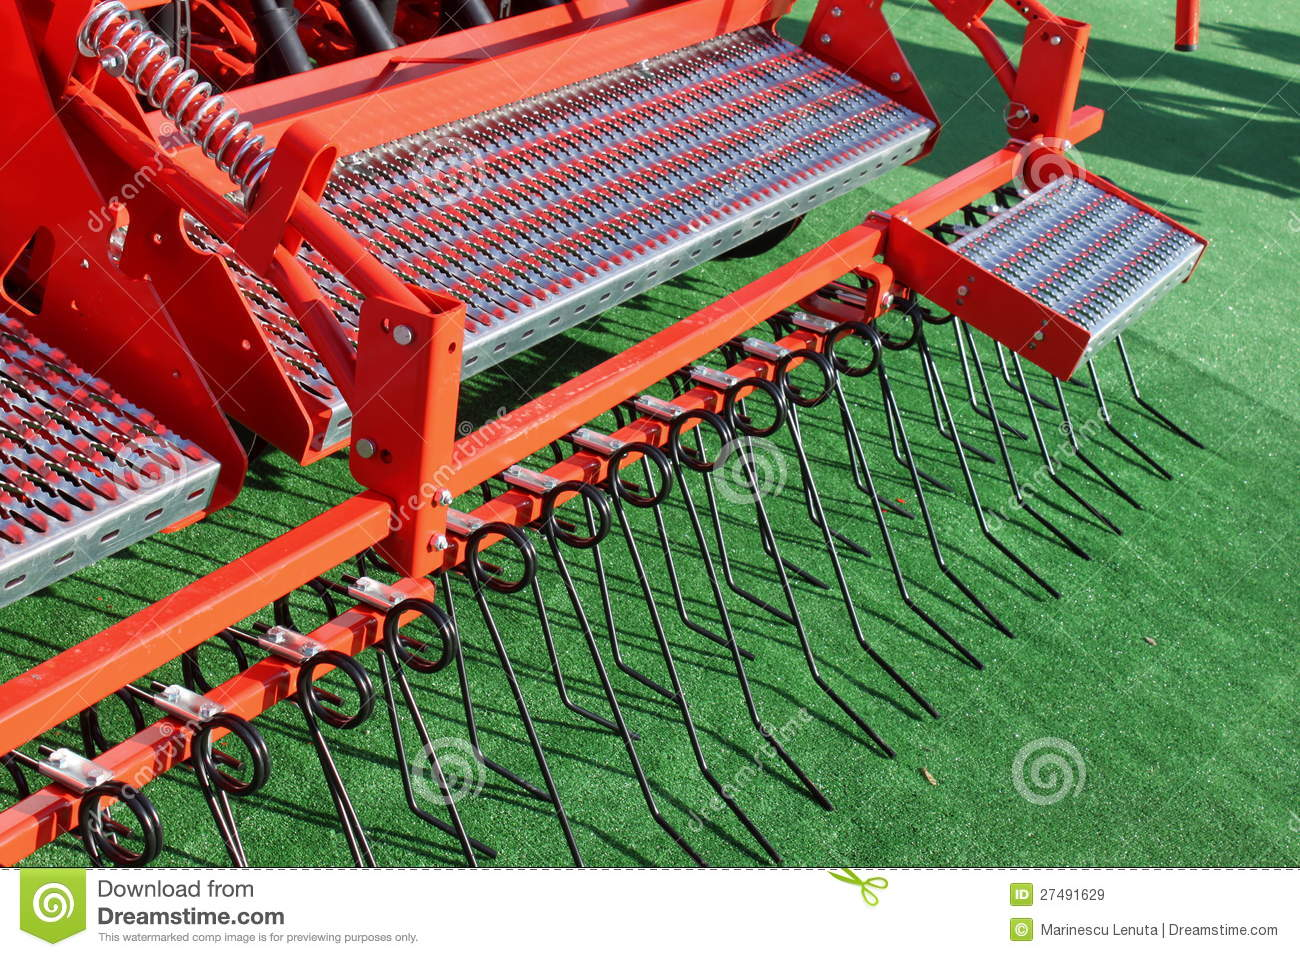 Equipamento agricultural